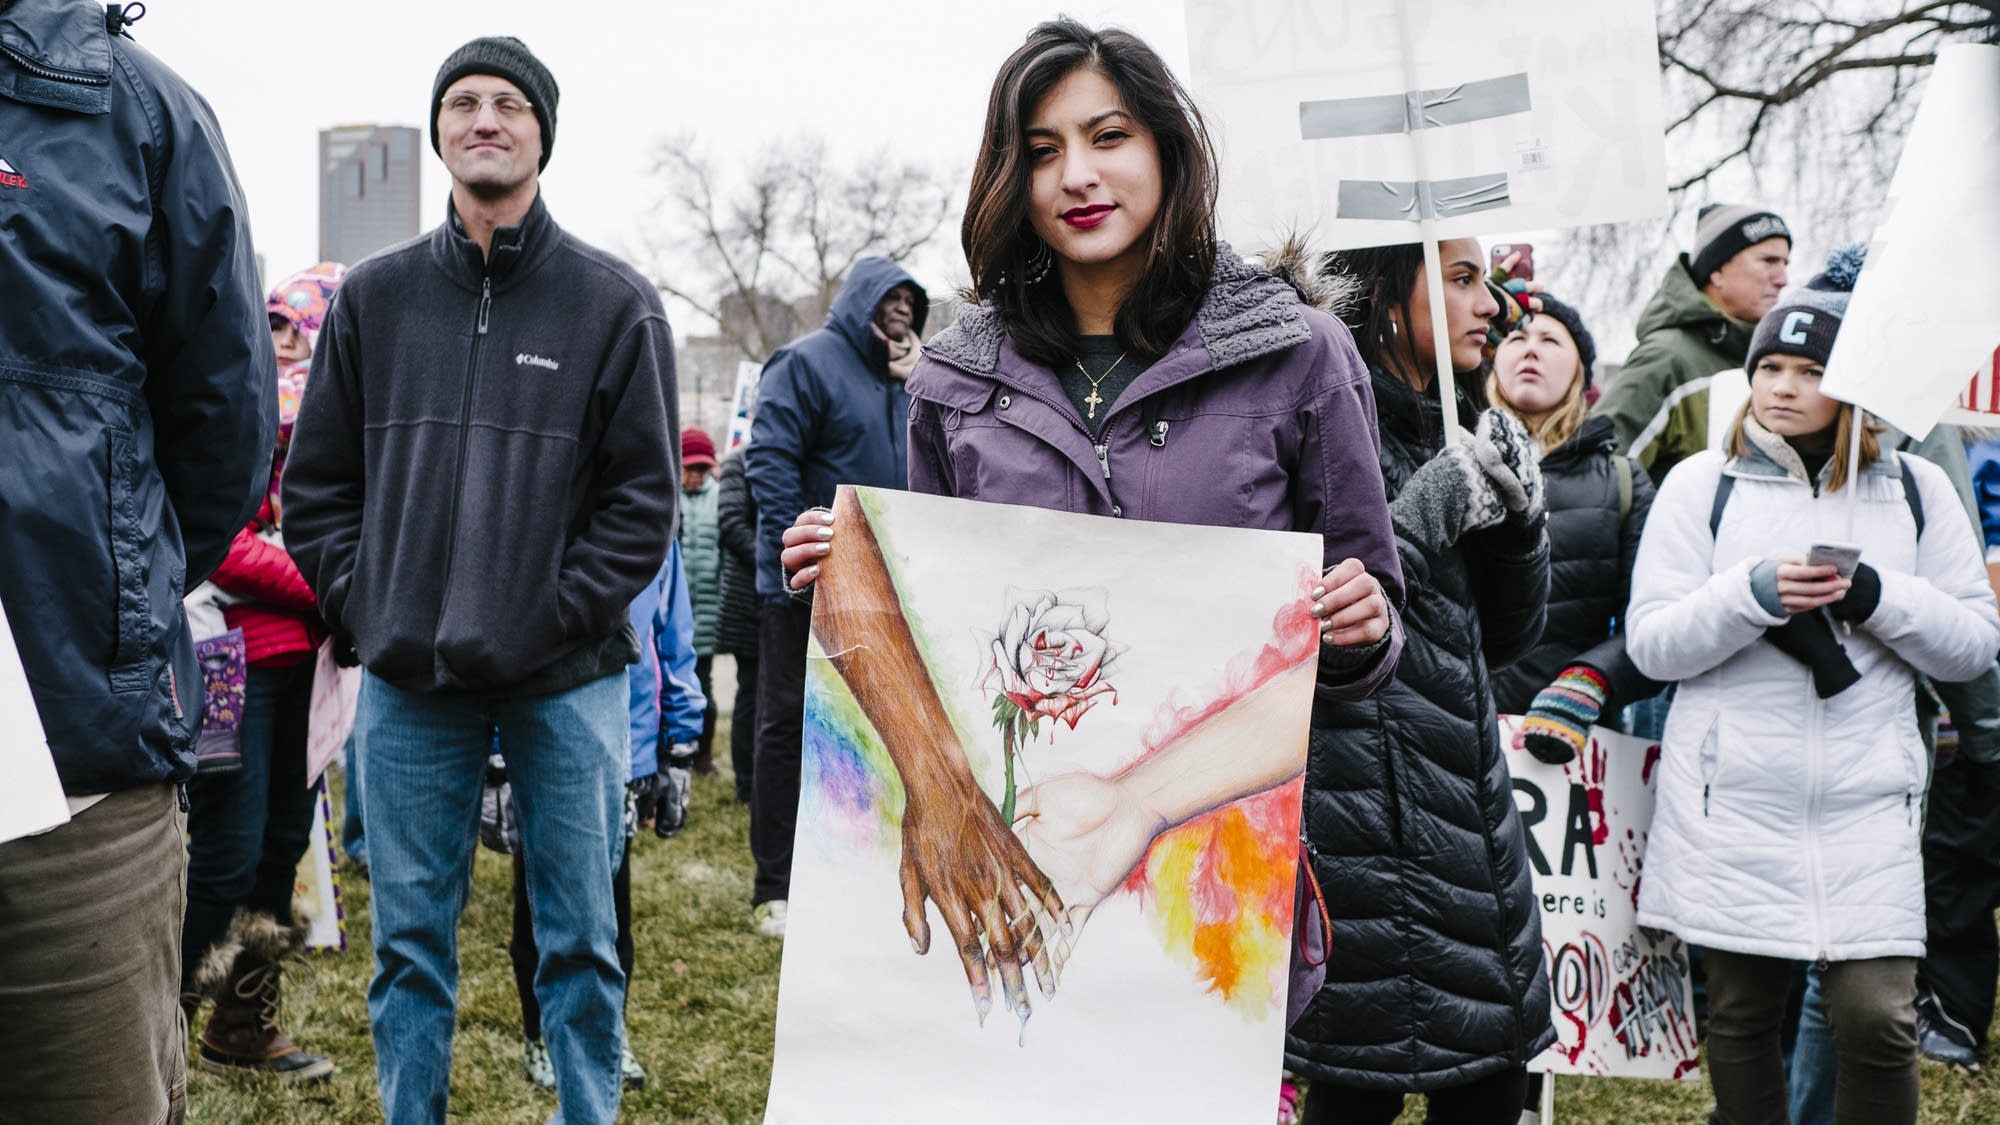 Kimberly Campl holds a drawing she made.